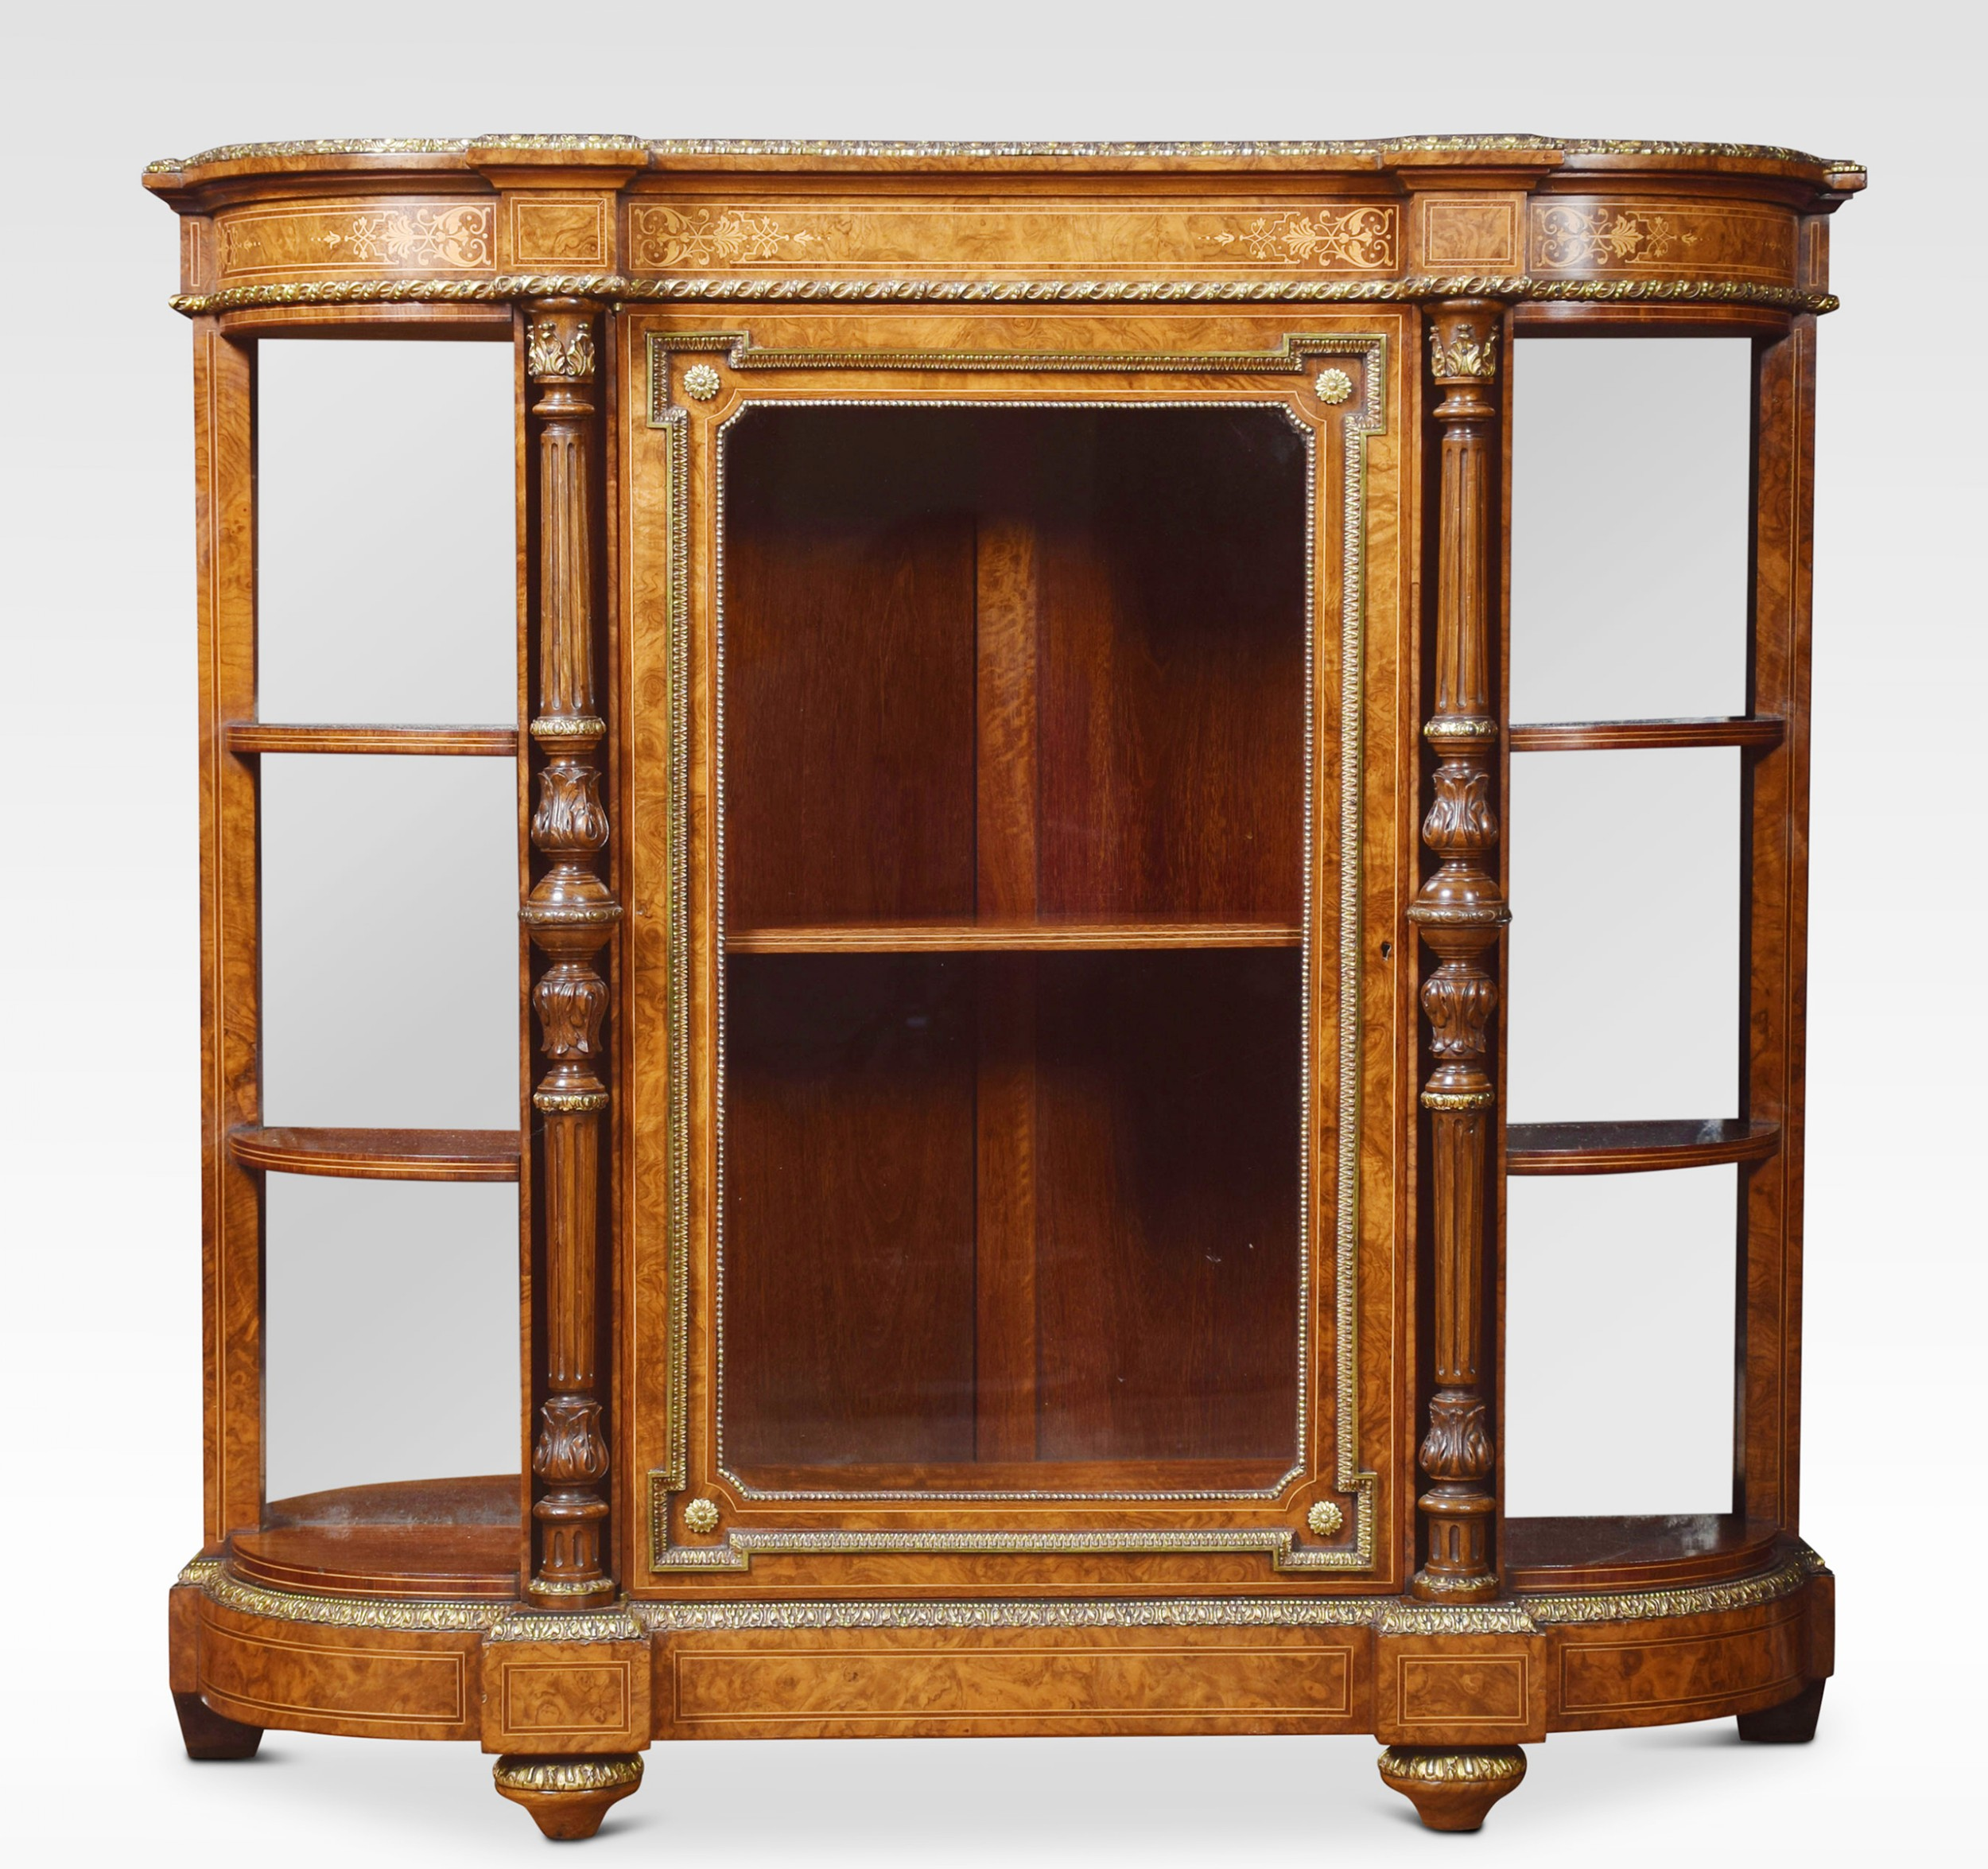 19th century figured walnut credenza of small proportions